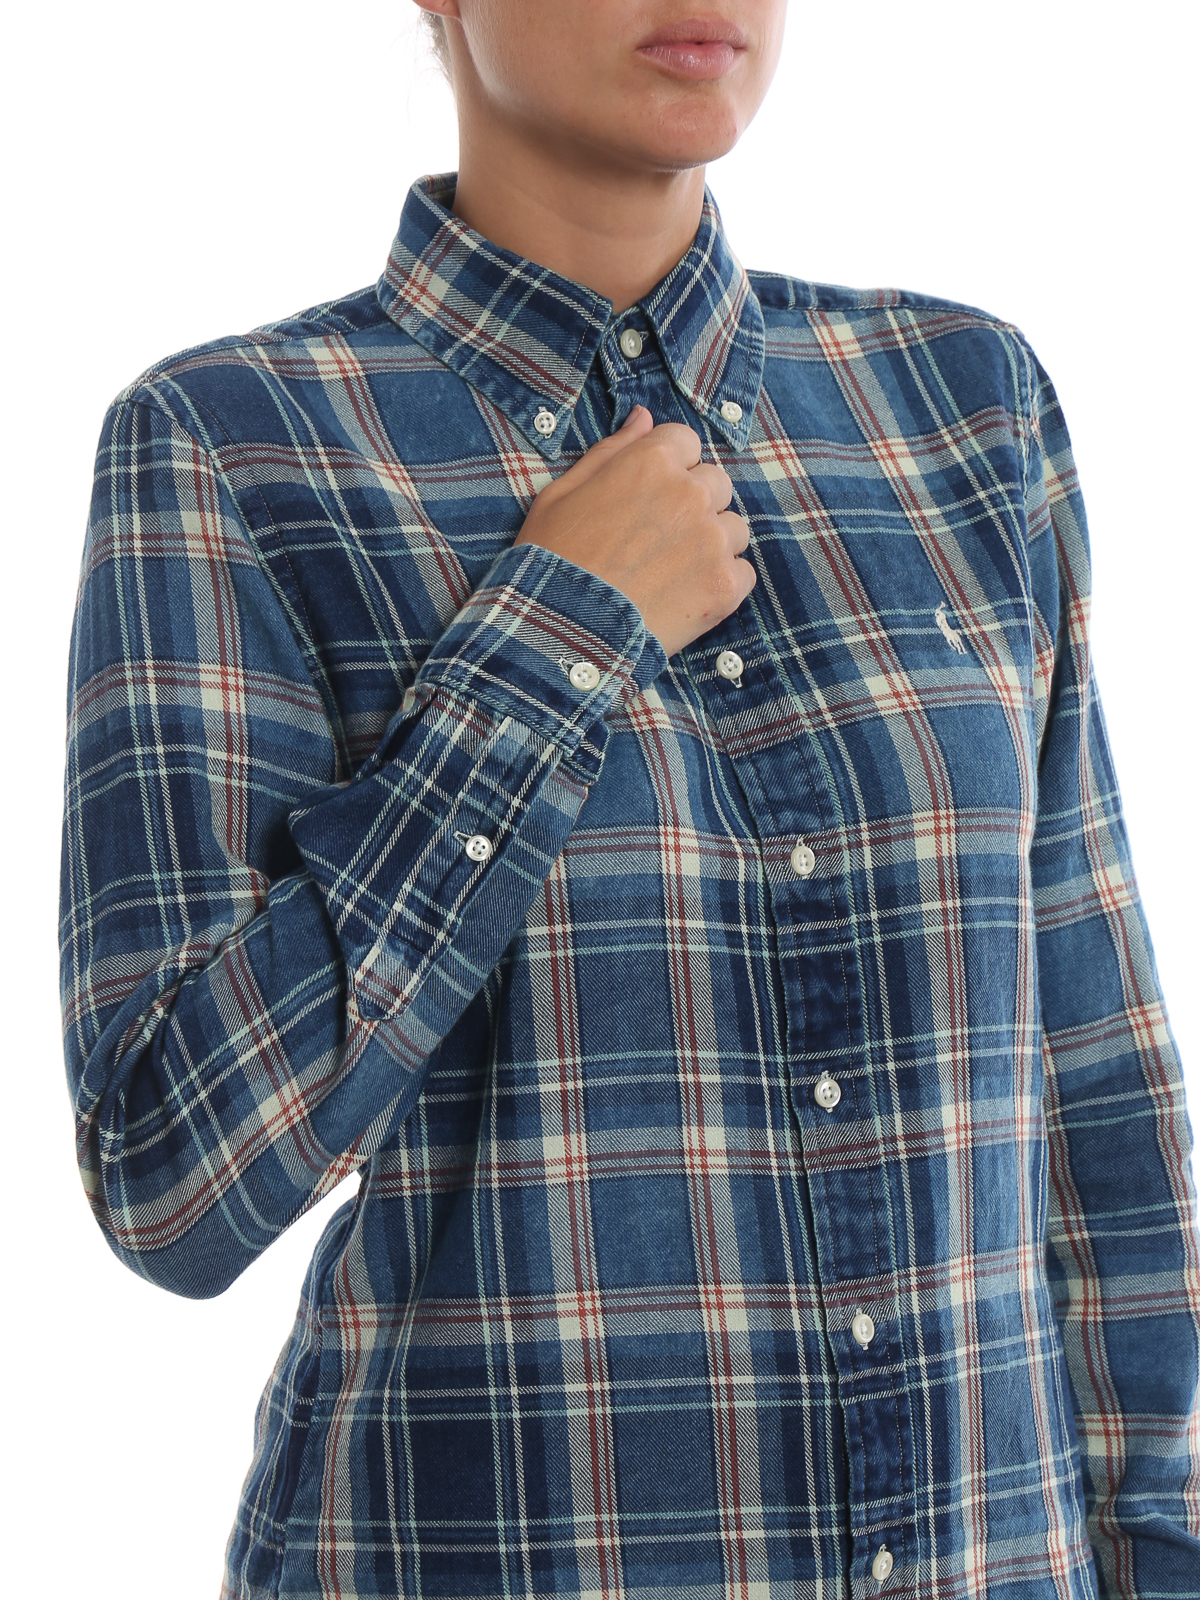 19d6e48a2a5d ... 50% off ralph lauren buy online chequered cotton button down classic  shirt 38c03 b65be